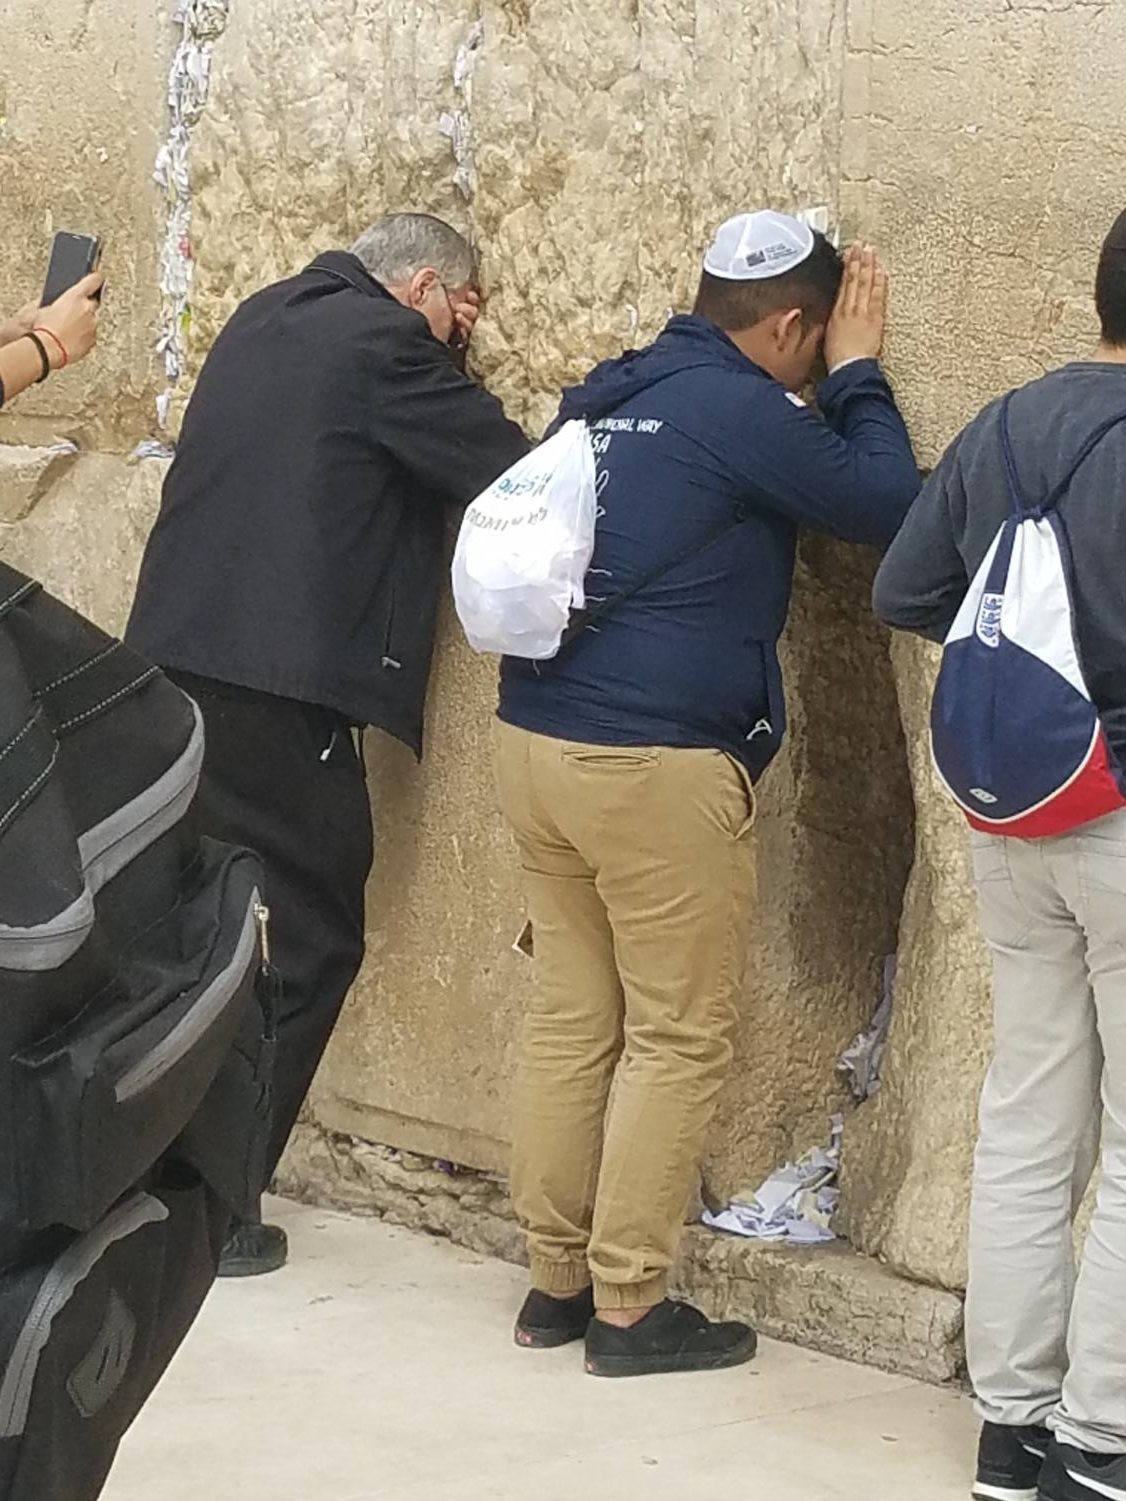 Jacob prays, alongside many others, at the Western Wall.